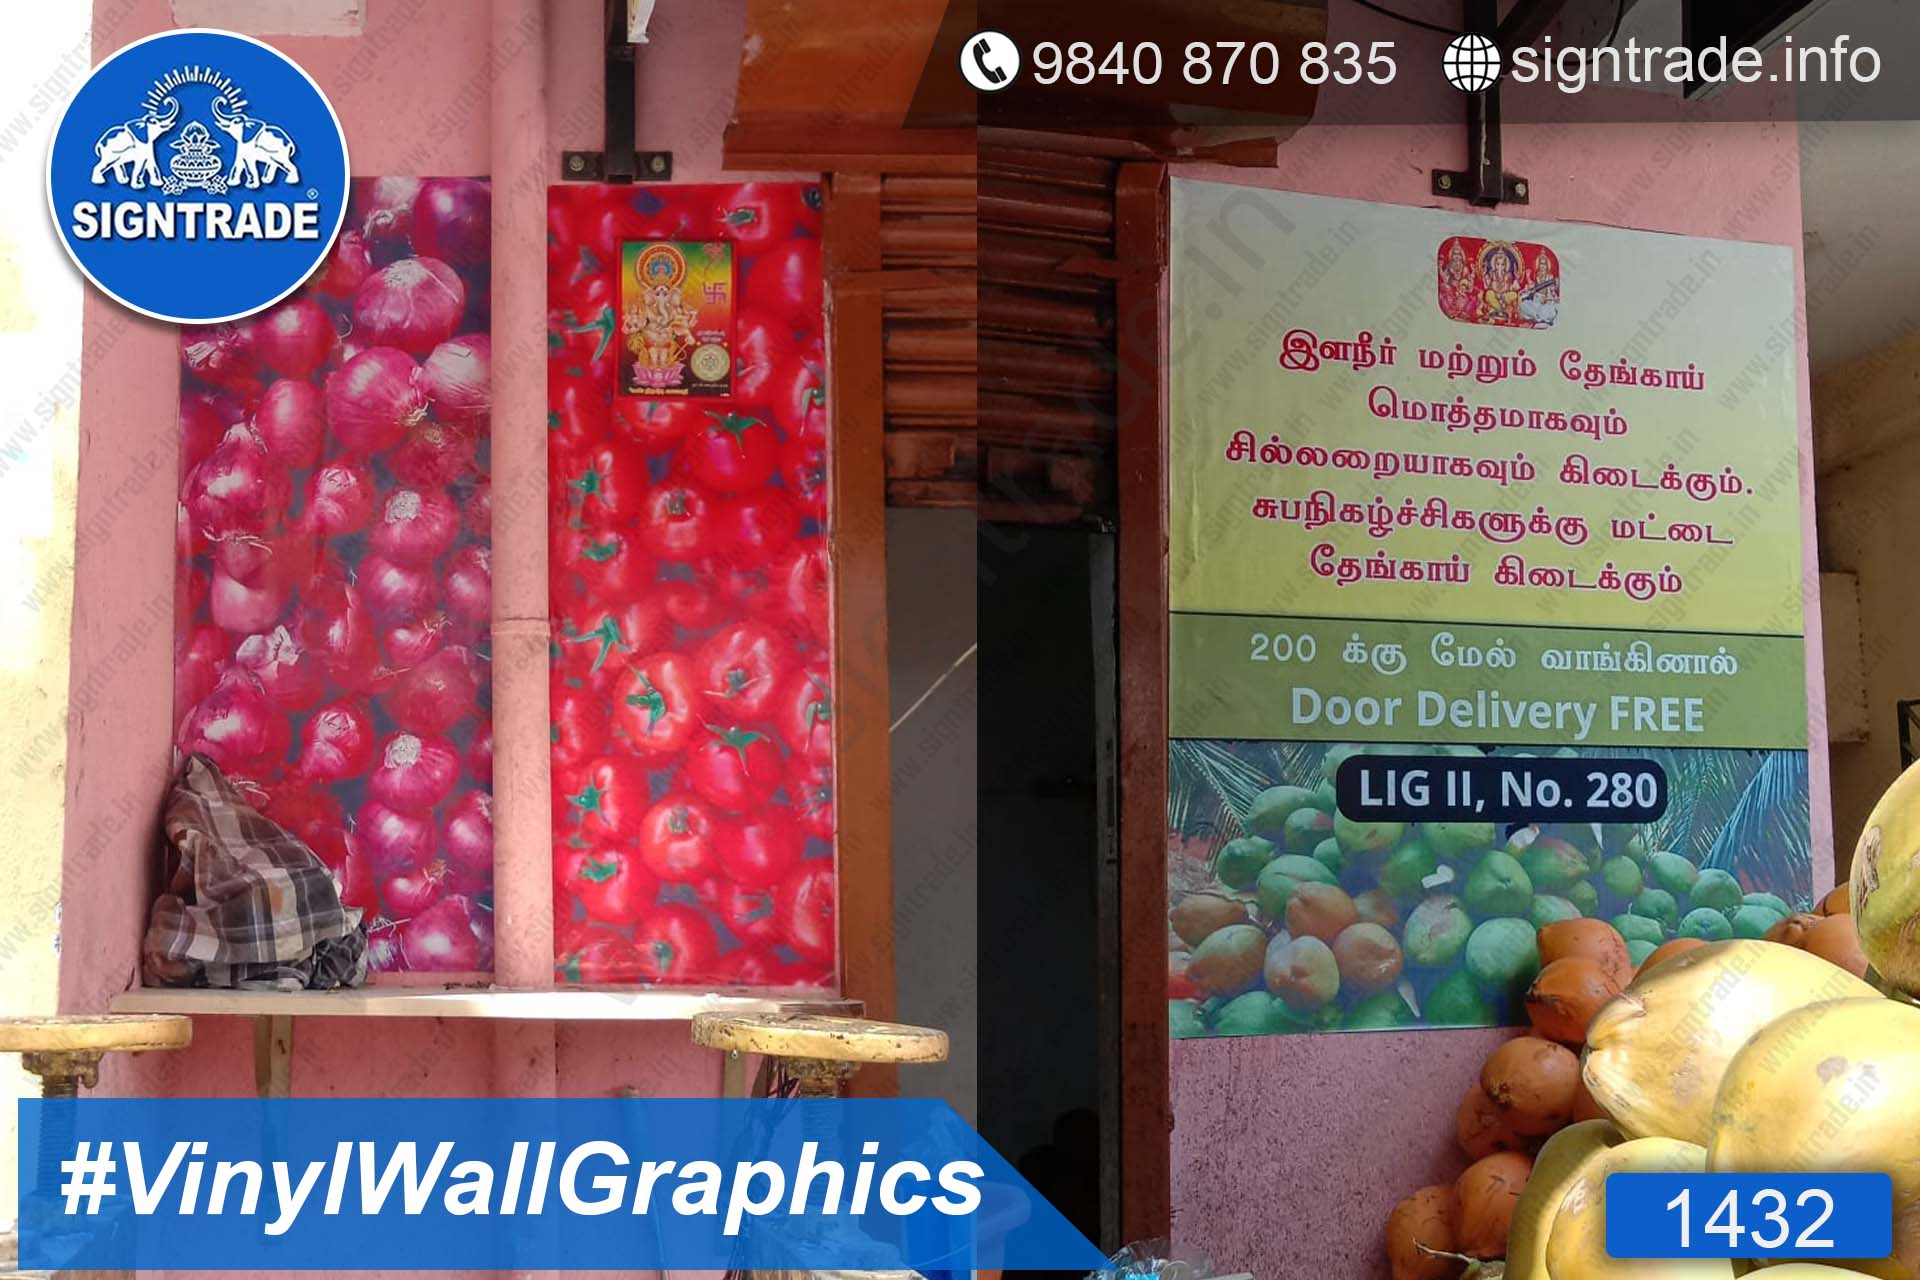 Rajam Tender Coconut Shop - 1432, Vinyl Graphics, Wall Graphics, Wall Wrapping, wall stickers, wall Wraps, Wall Branding, Wall Branding on foam board